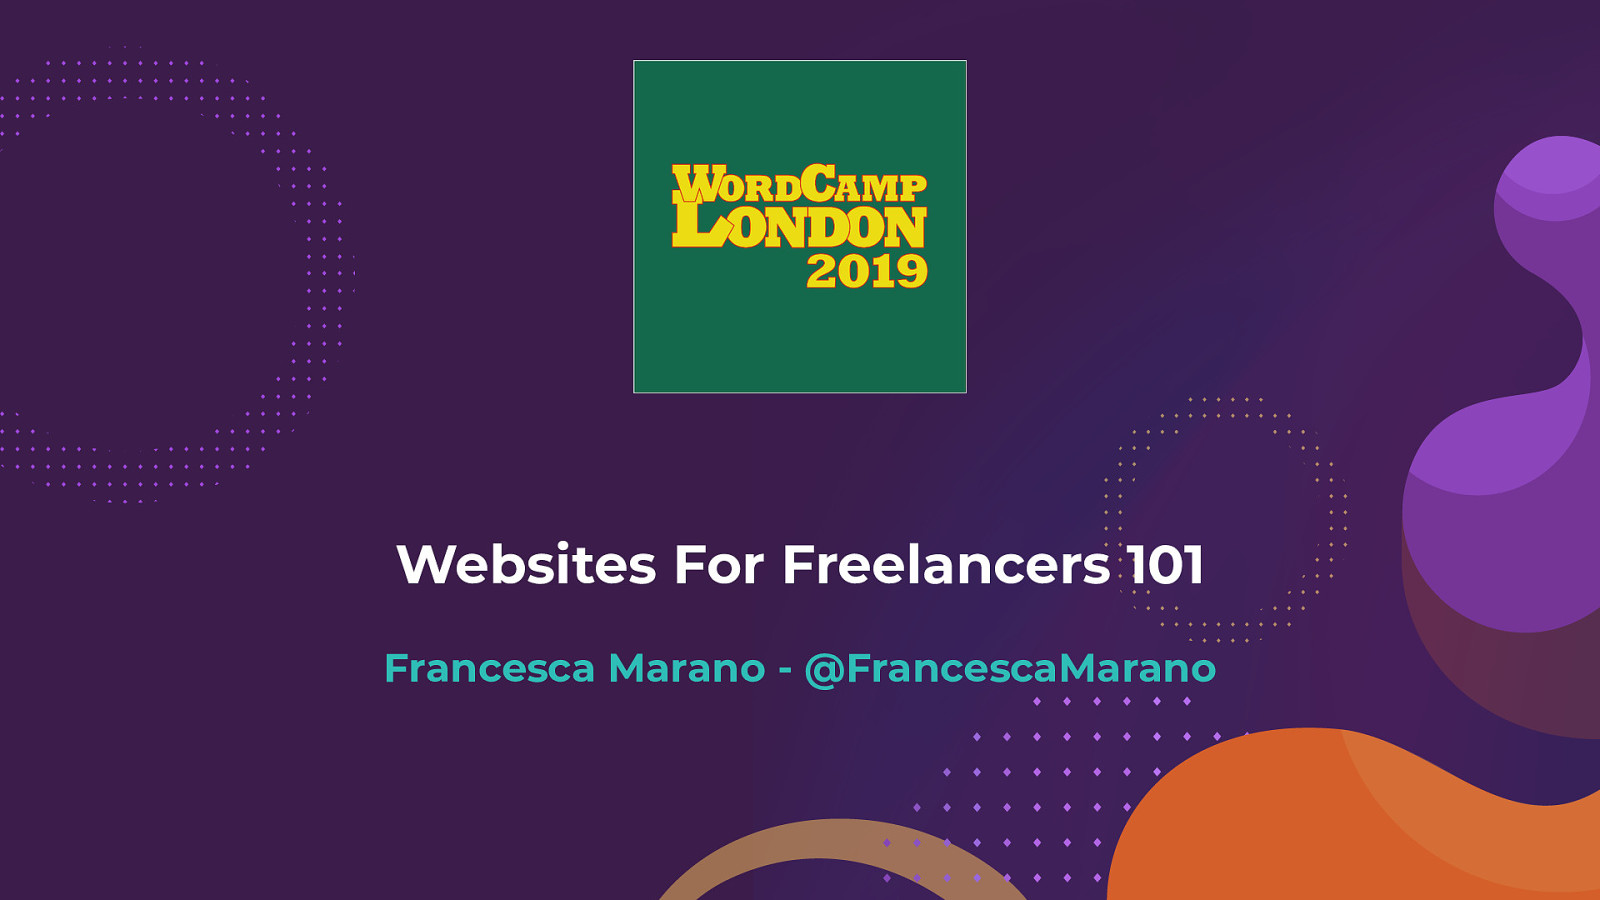 Websites for freelancers 101